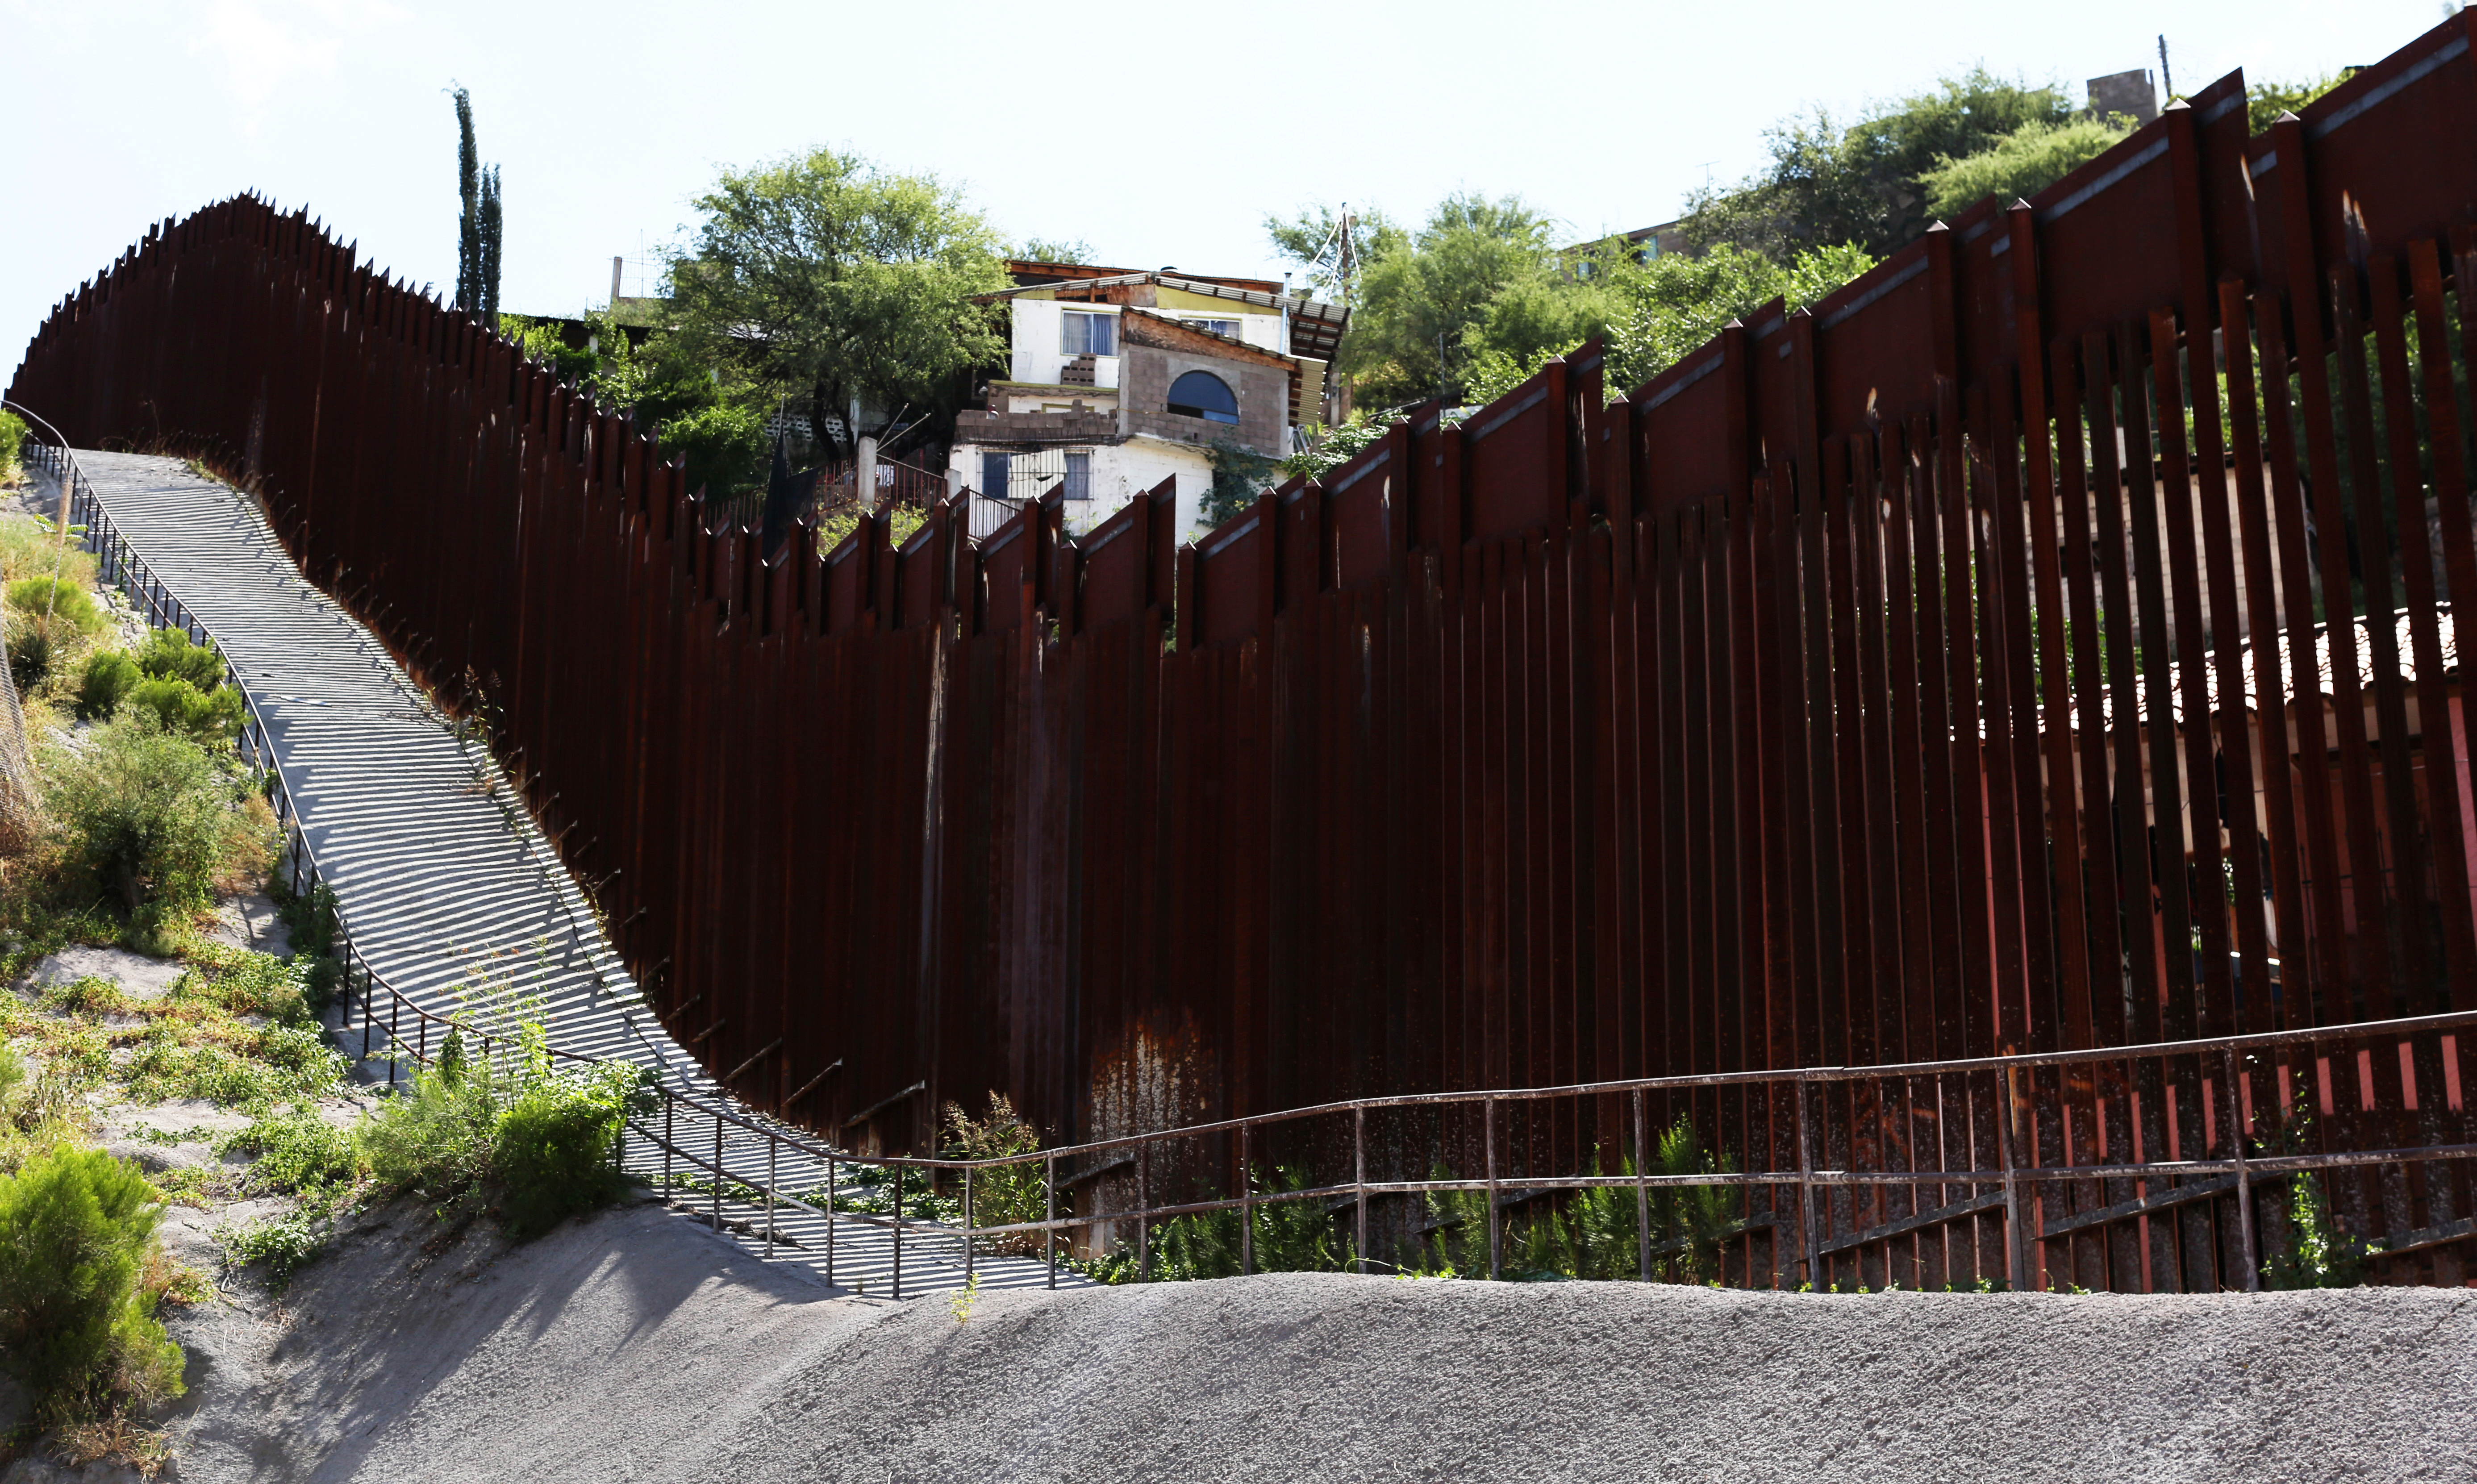 The U.S.-Mexico border fence cuts through Nogales